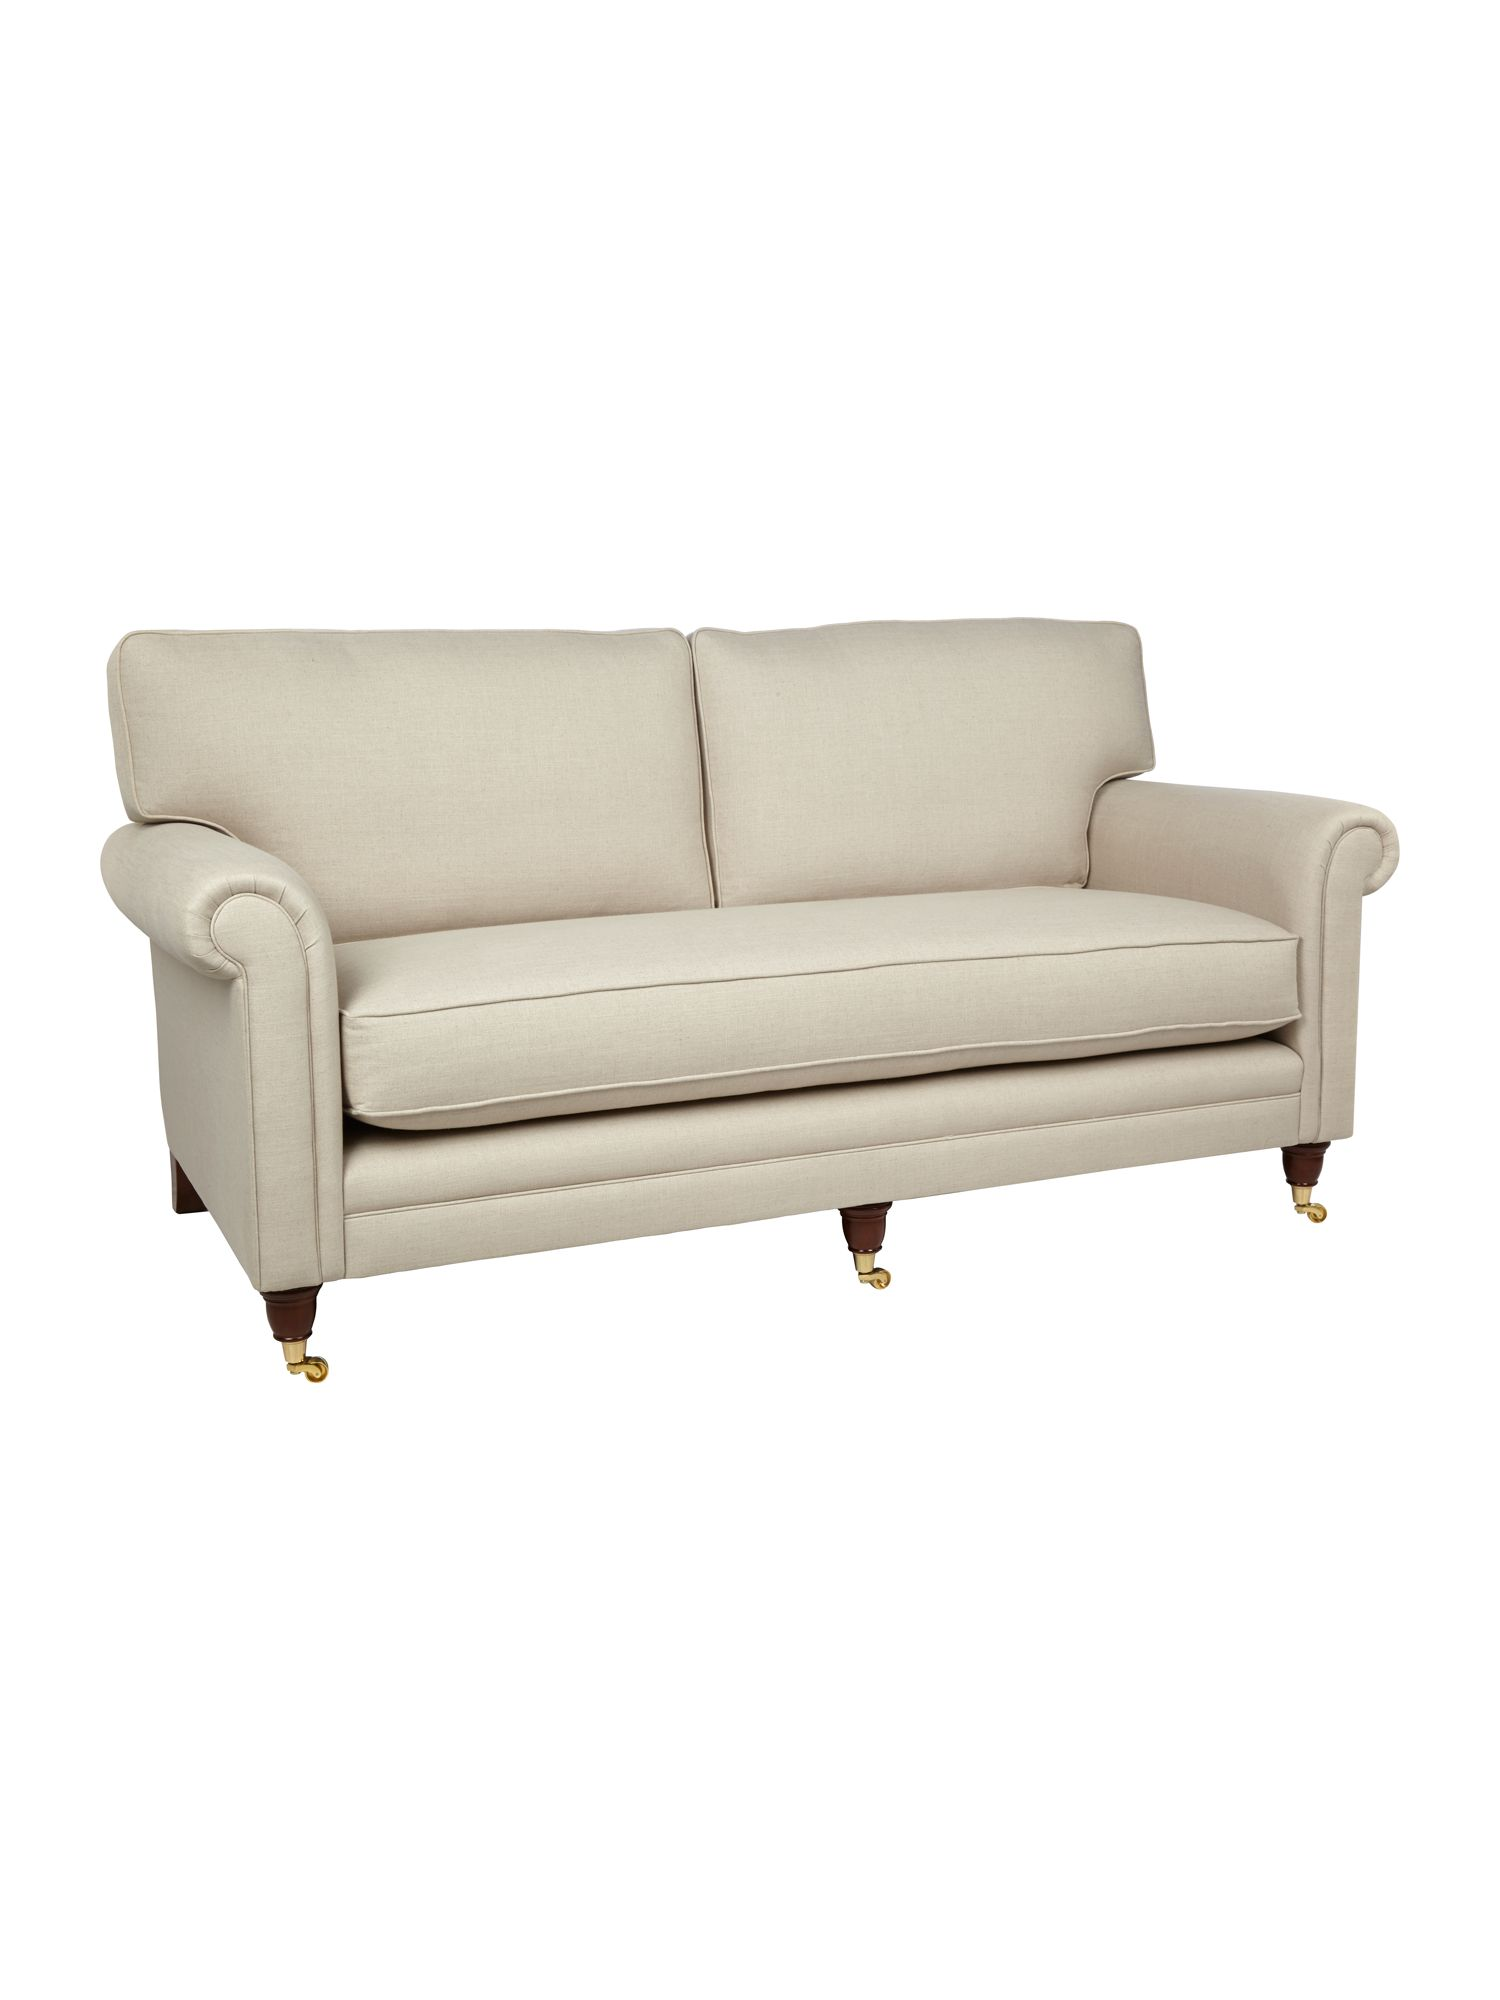 Wiltshire beige large sofa